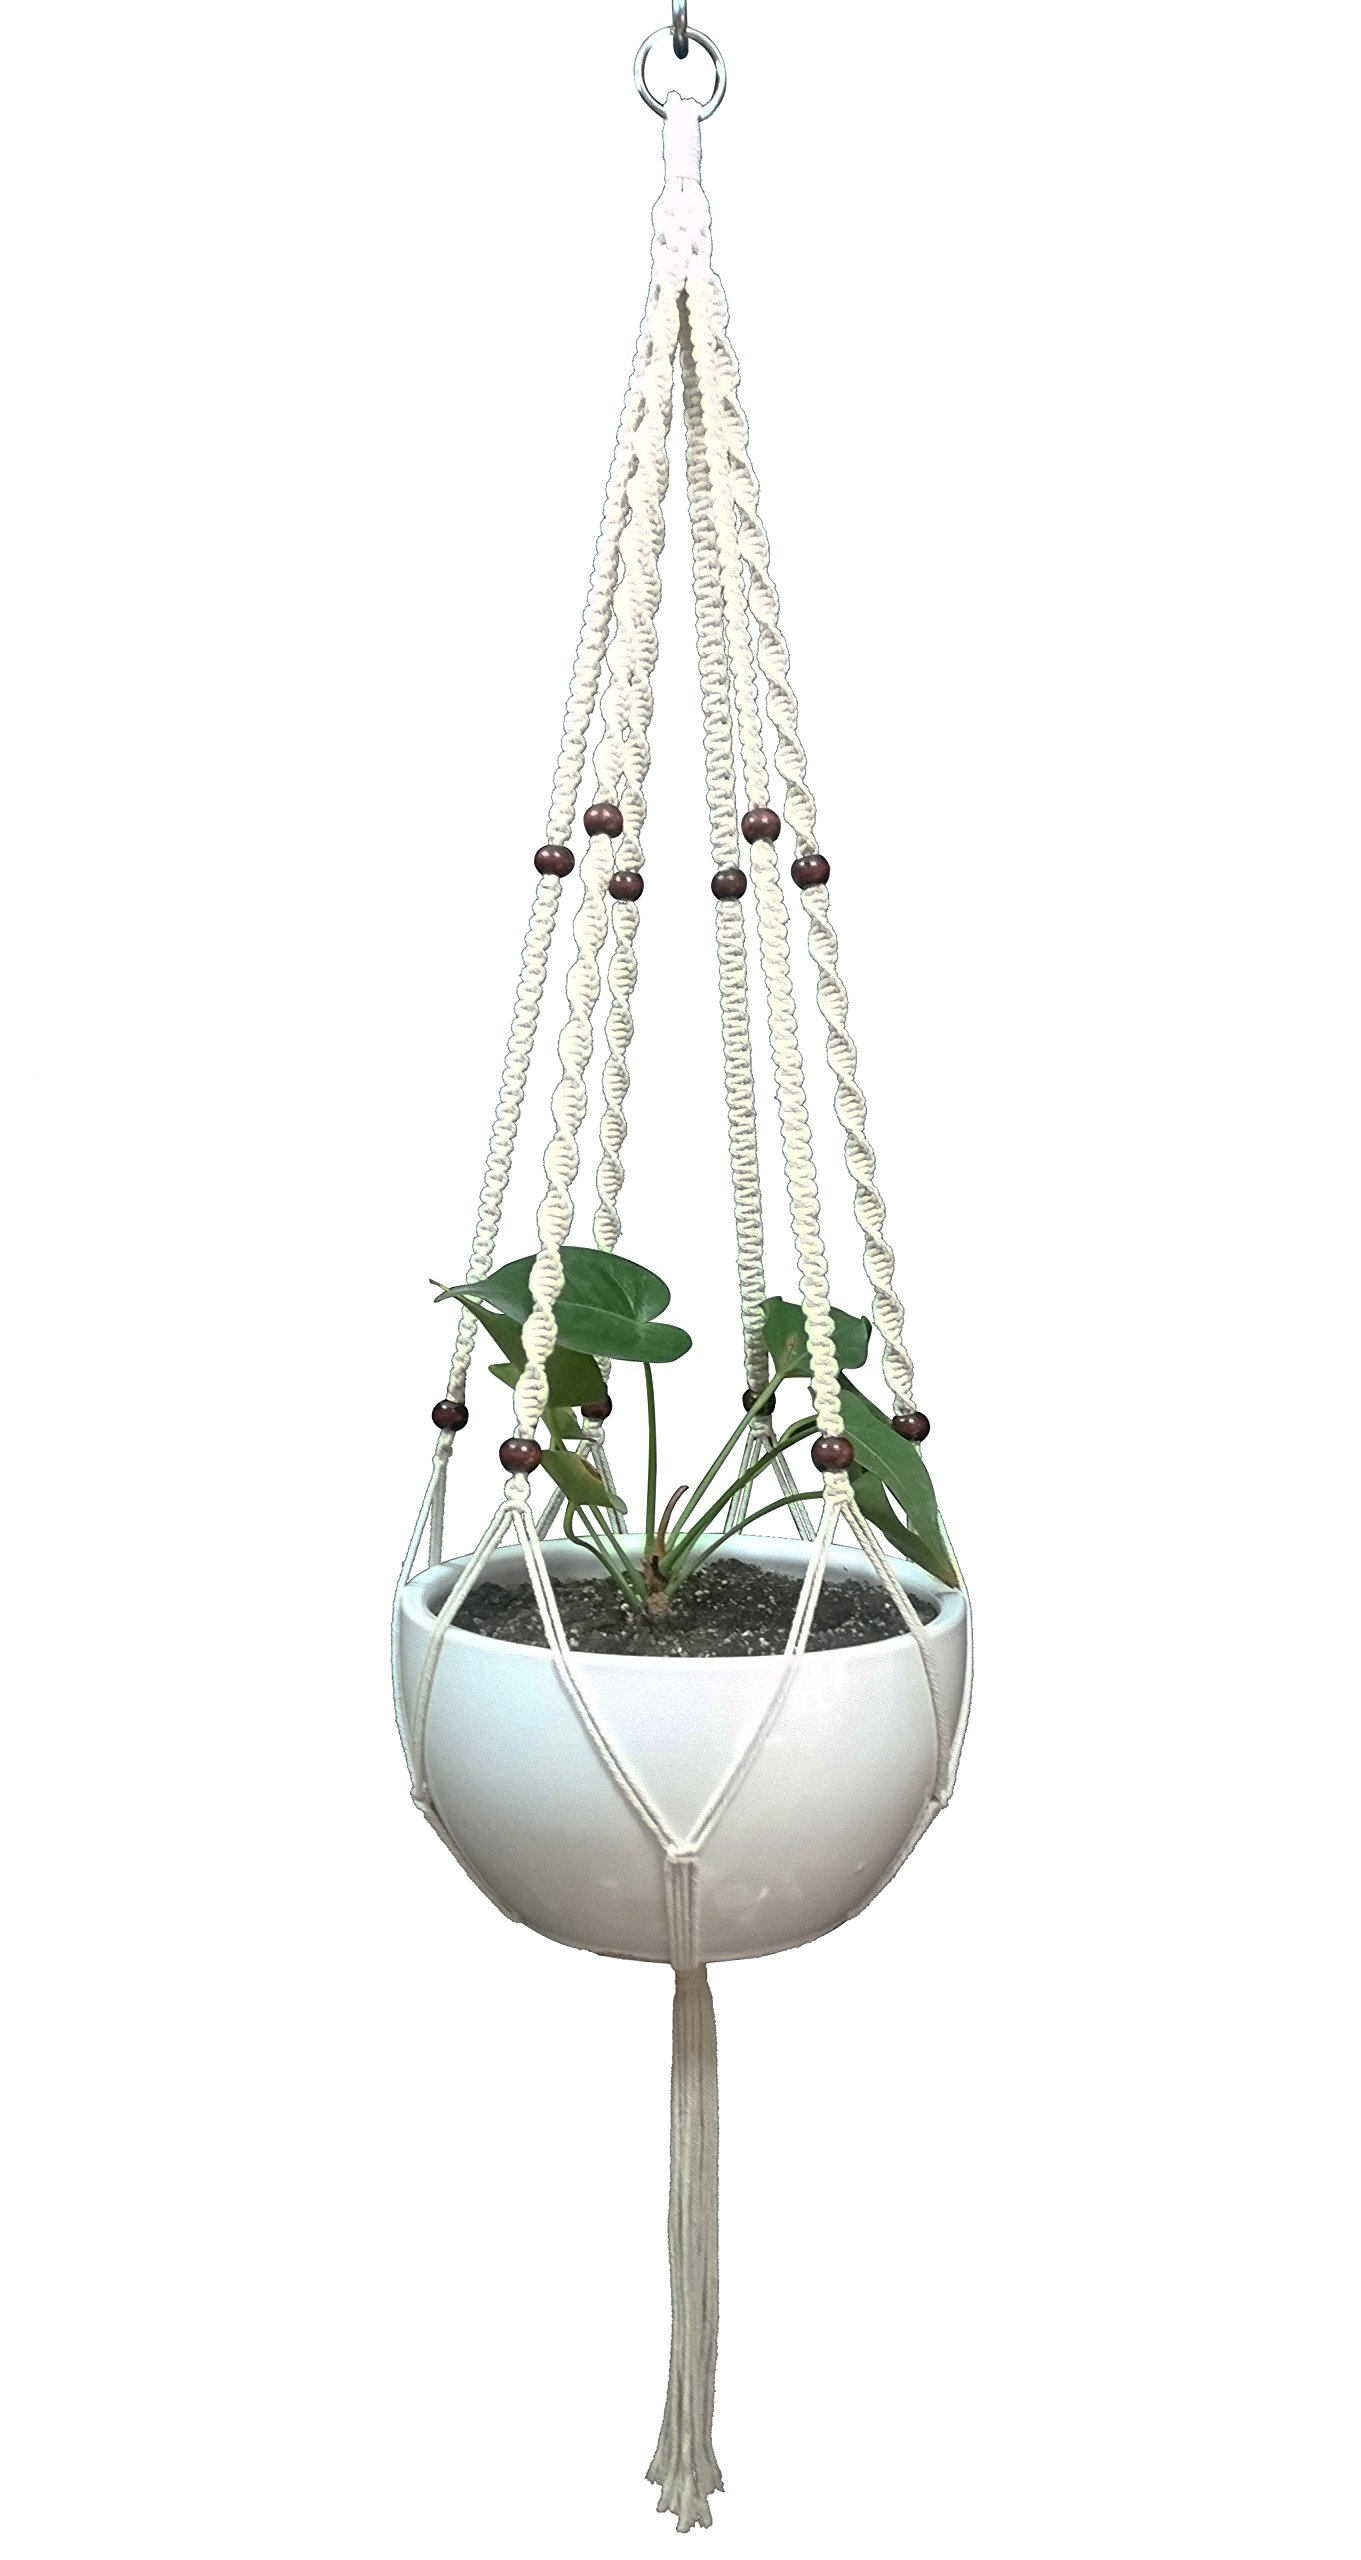 Plant Hanger Macrame Cotton 6 Legs 51 inches in Tan and Green Color for Indoor Outdoor, Living Room, Kitchen, Deck, Patio, High and Low Ceiling with Size of 10-12 inches Without The Pot (Cream)